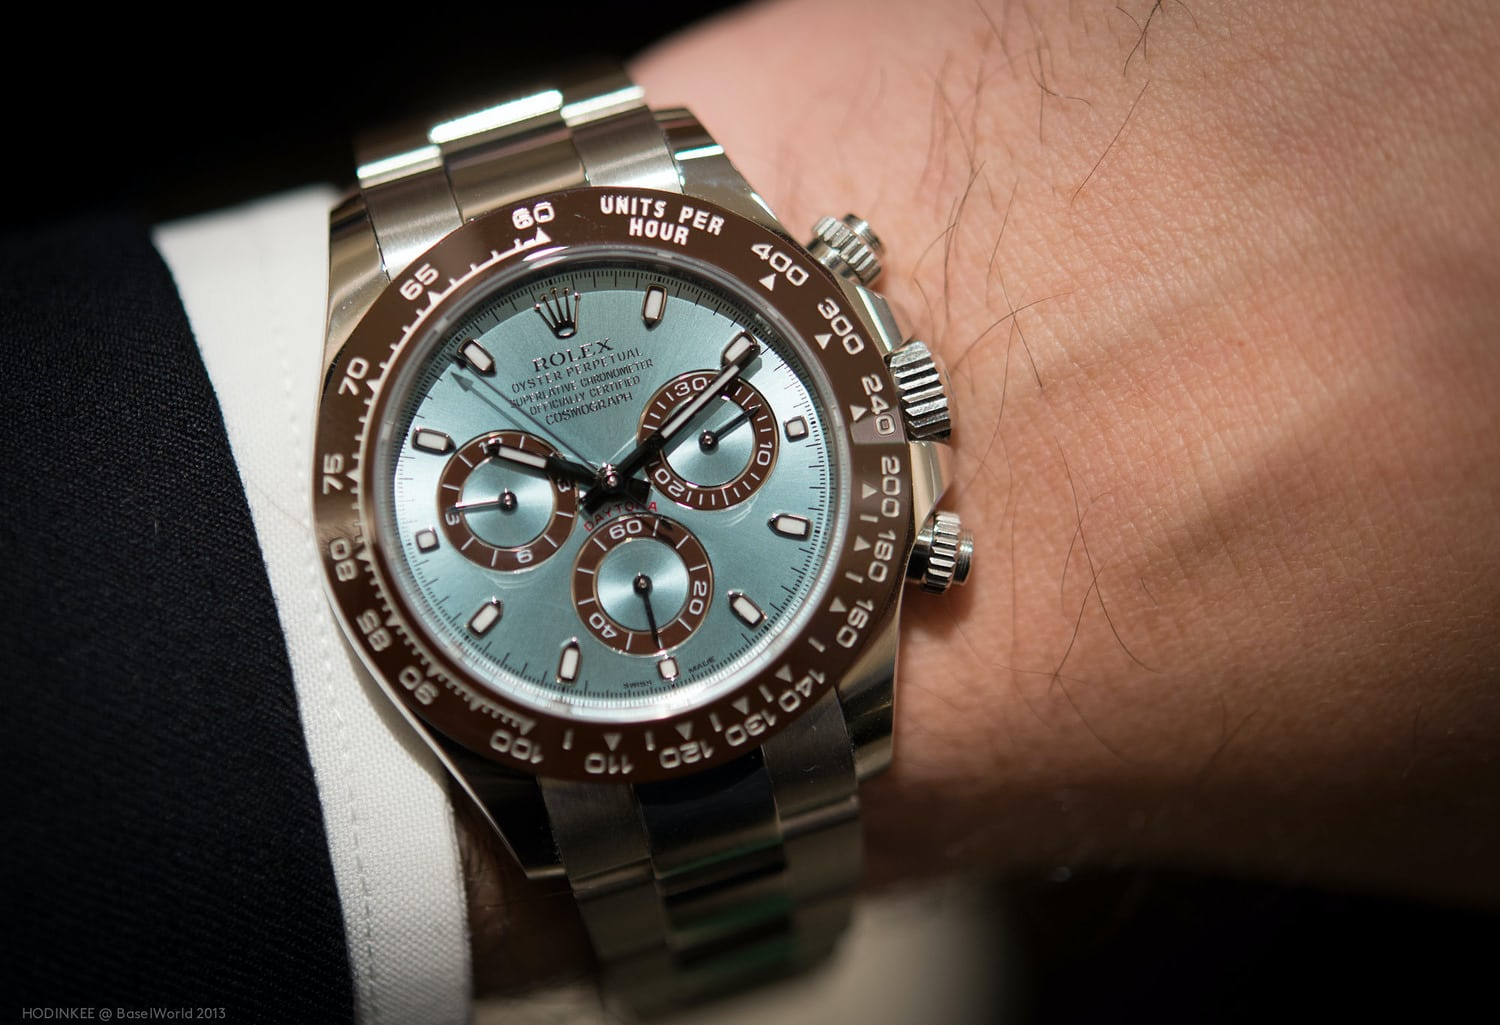 5dfc341a485 Hands-On: With The 50th Anniversary Rolex Cosmograph Daytona In Platinum  Reference 116506 (Live Pics, Full Details, Pricing) - HODINKEE